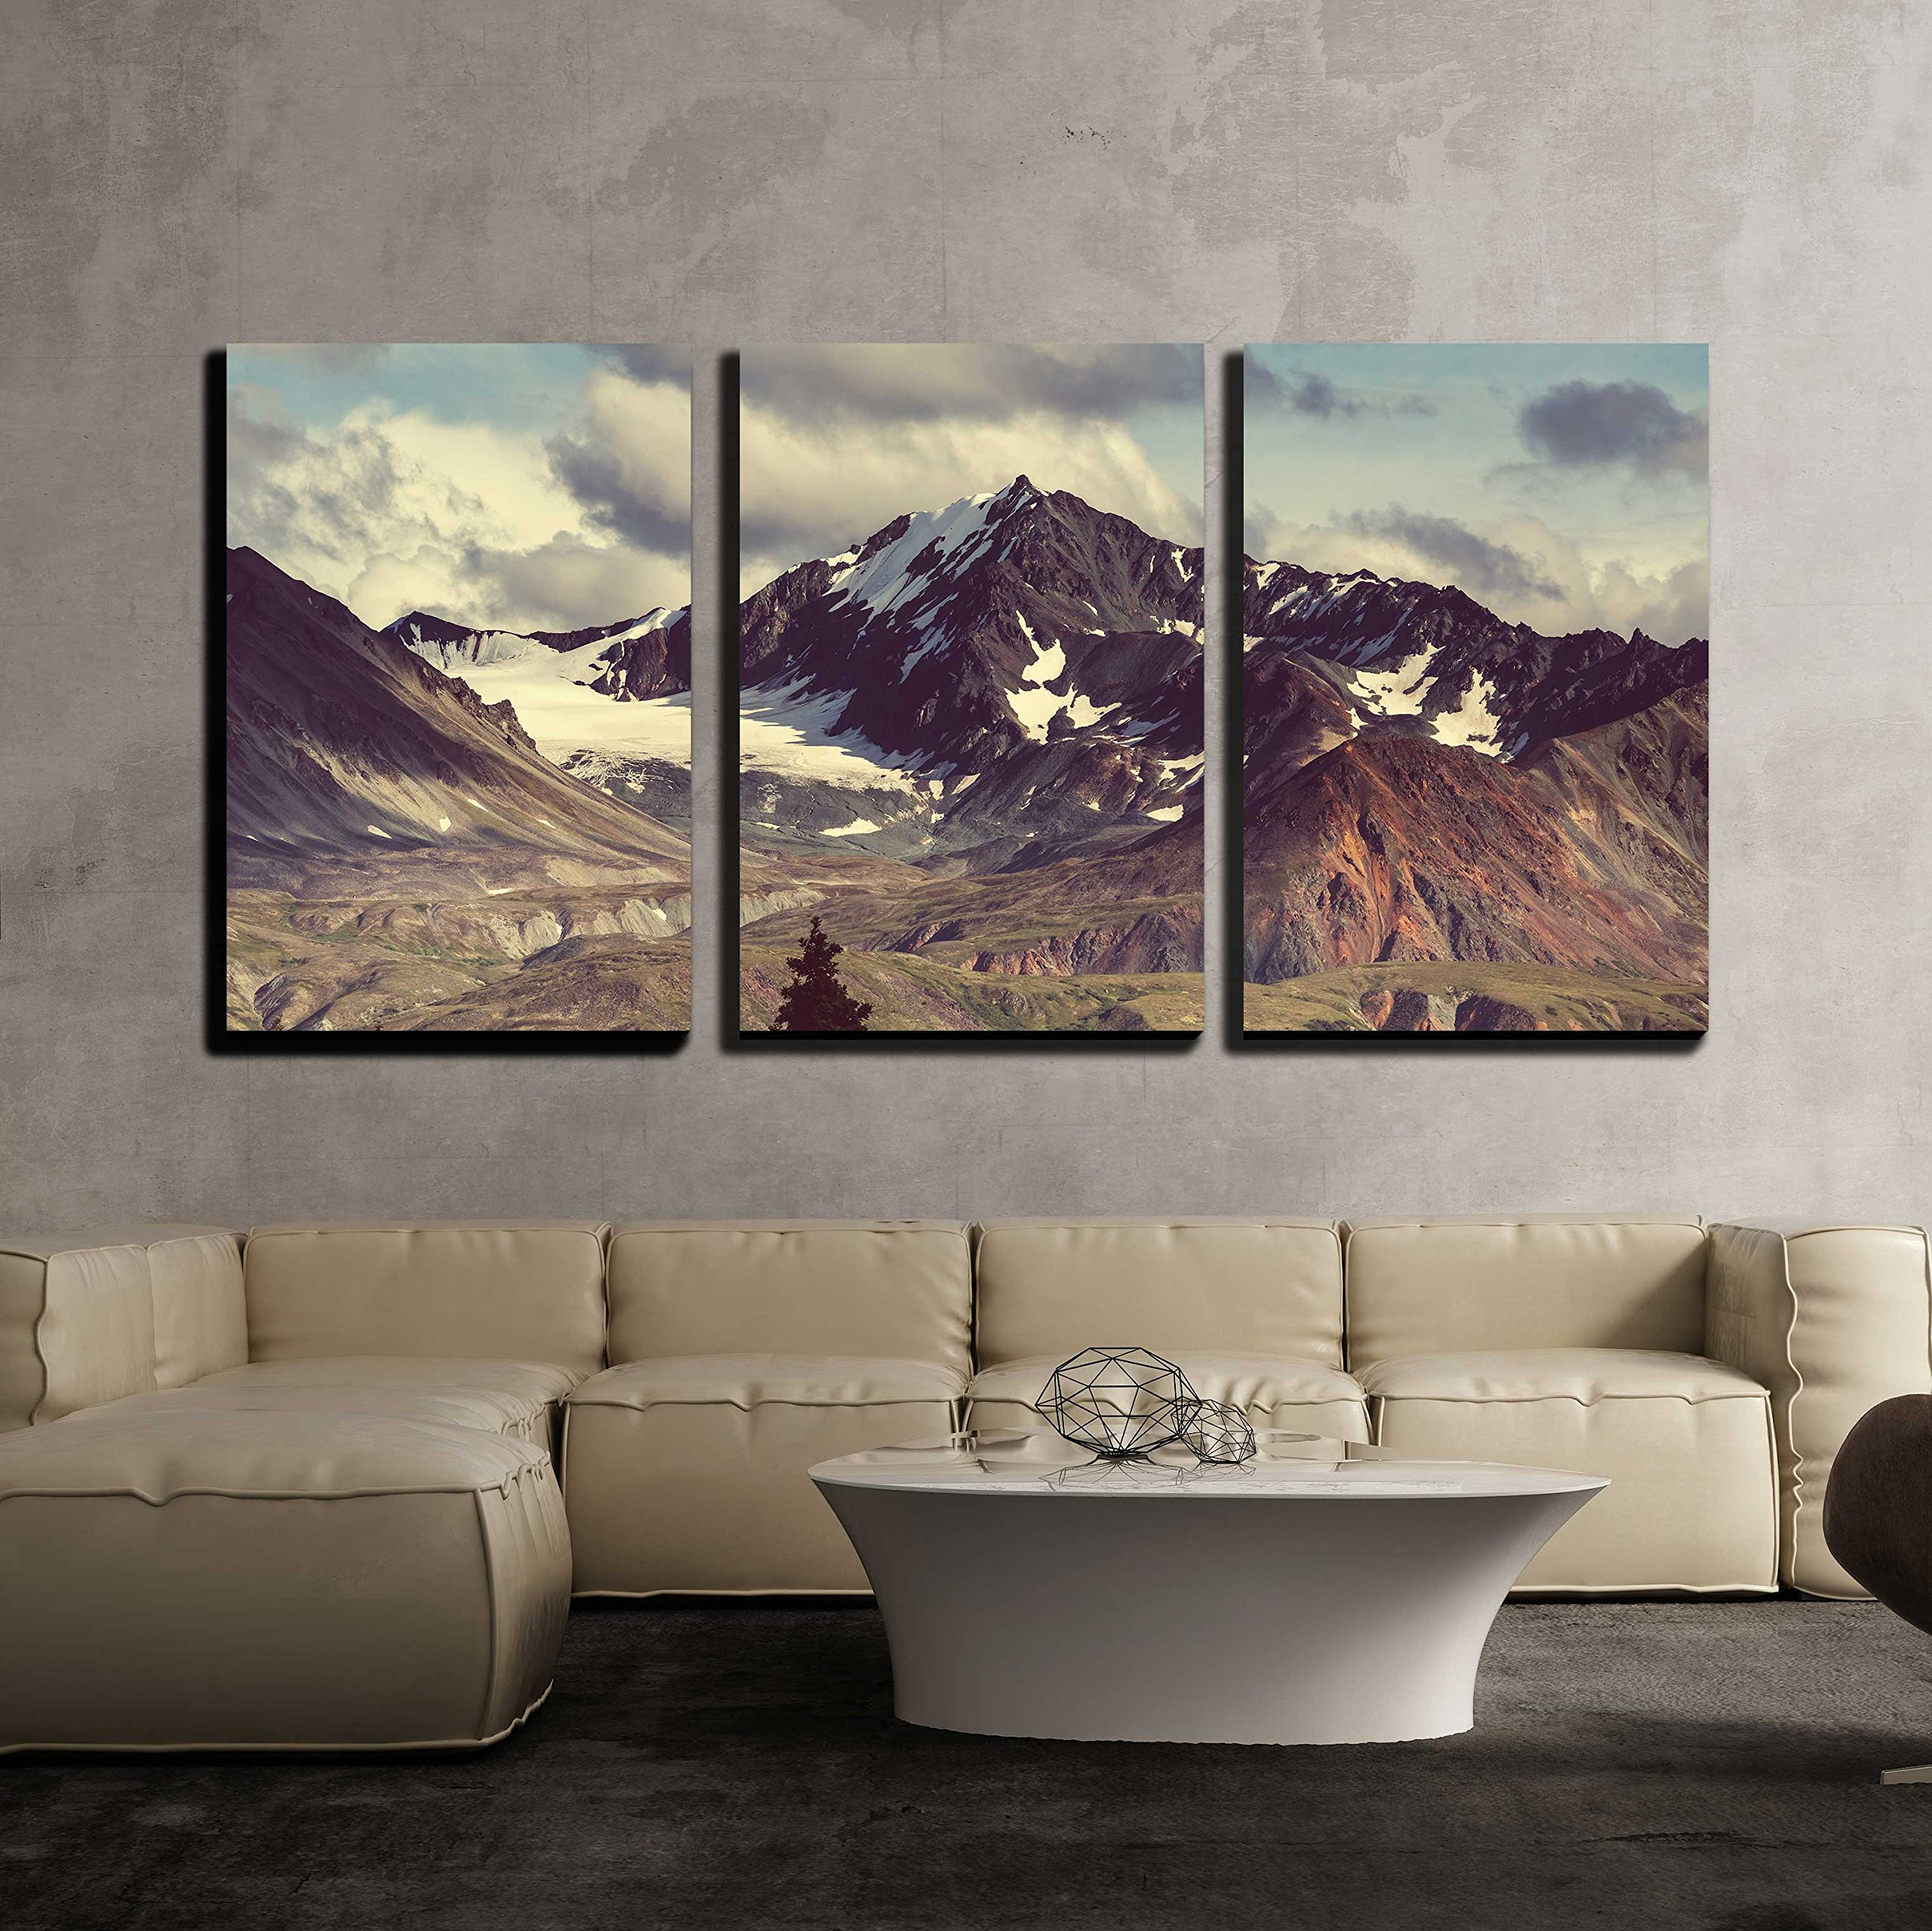 wall26 - 3 Piece Canvas Wall Art - Mountains in Alaska - Modern Home Decor Stretched and Framed Ready to Hang - 24''x36''x3 Panels by wall26